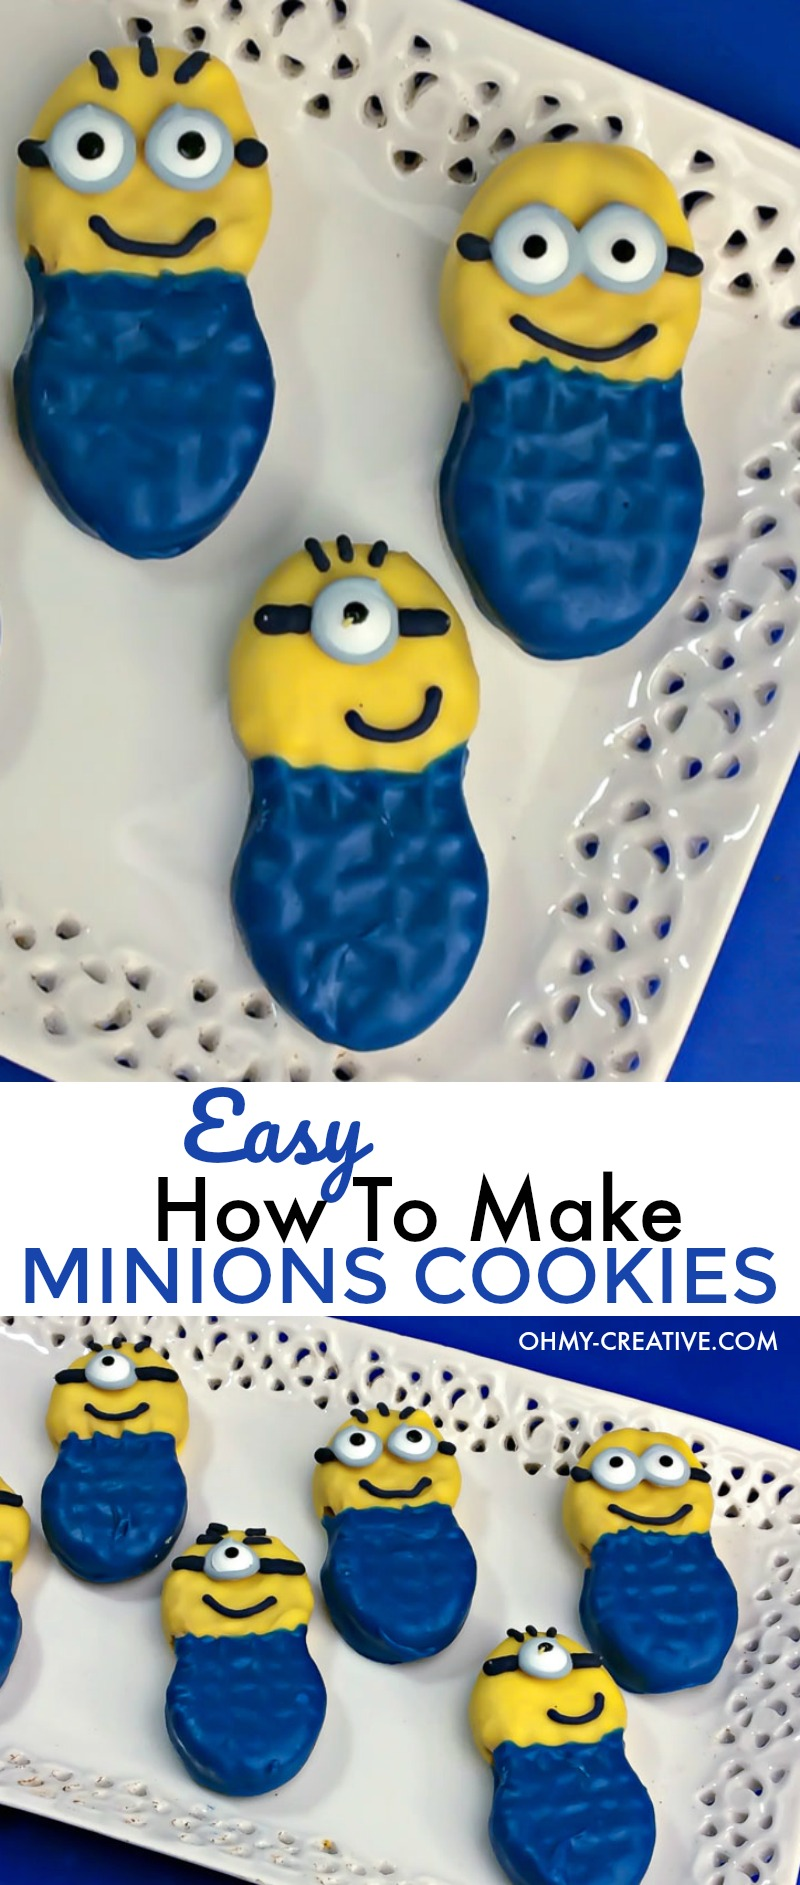 How to make Minions Cookies   OHMY-CREATIVE.COM   Minion Dessert   Minion Party   How to make Minion goggles   Minion Craft   Nutter Butter Cookies   Despicable Me